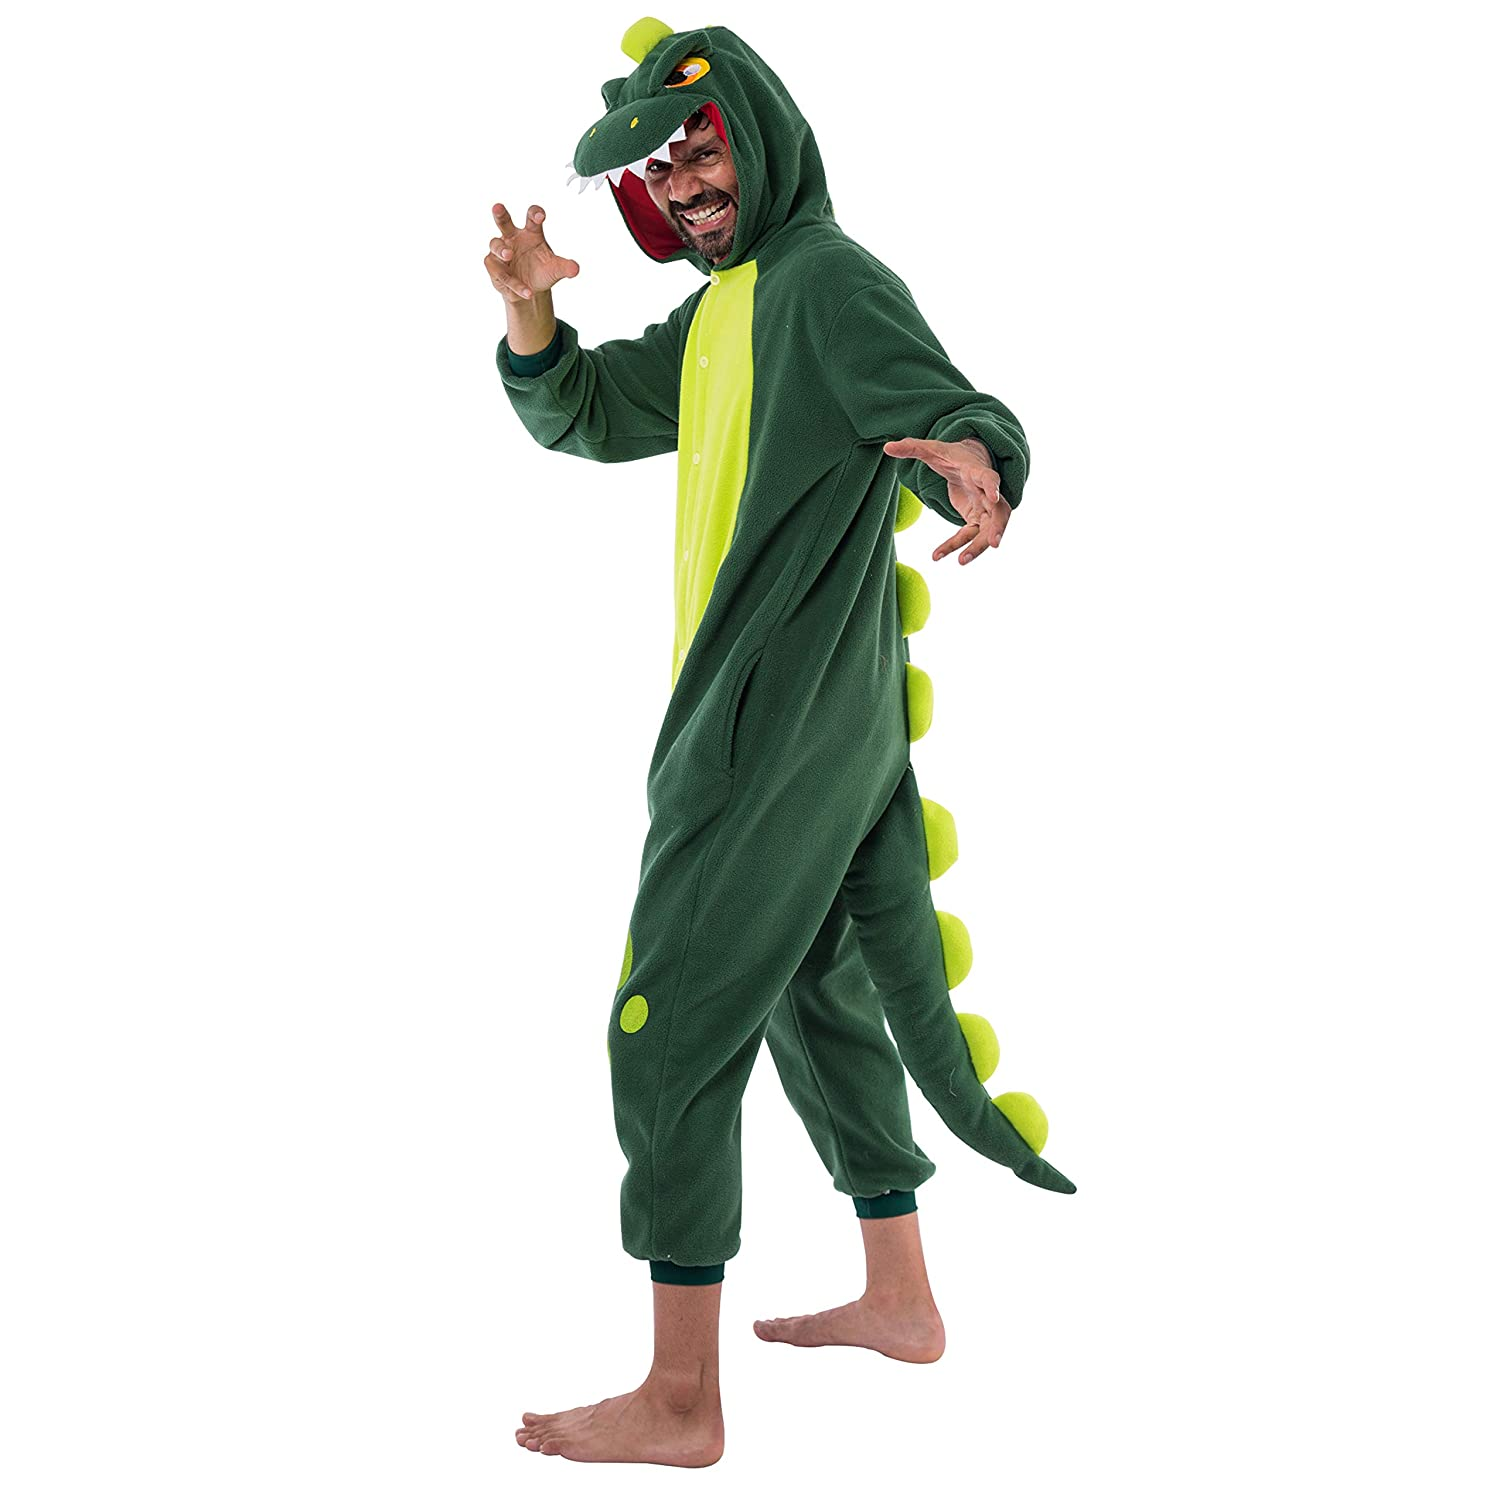 Spooktacular Creations Unisex Adult Pajama Plush Onesie One Piece Dinosaur Animal Costume